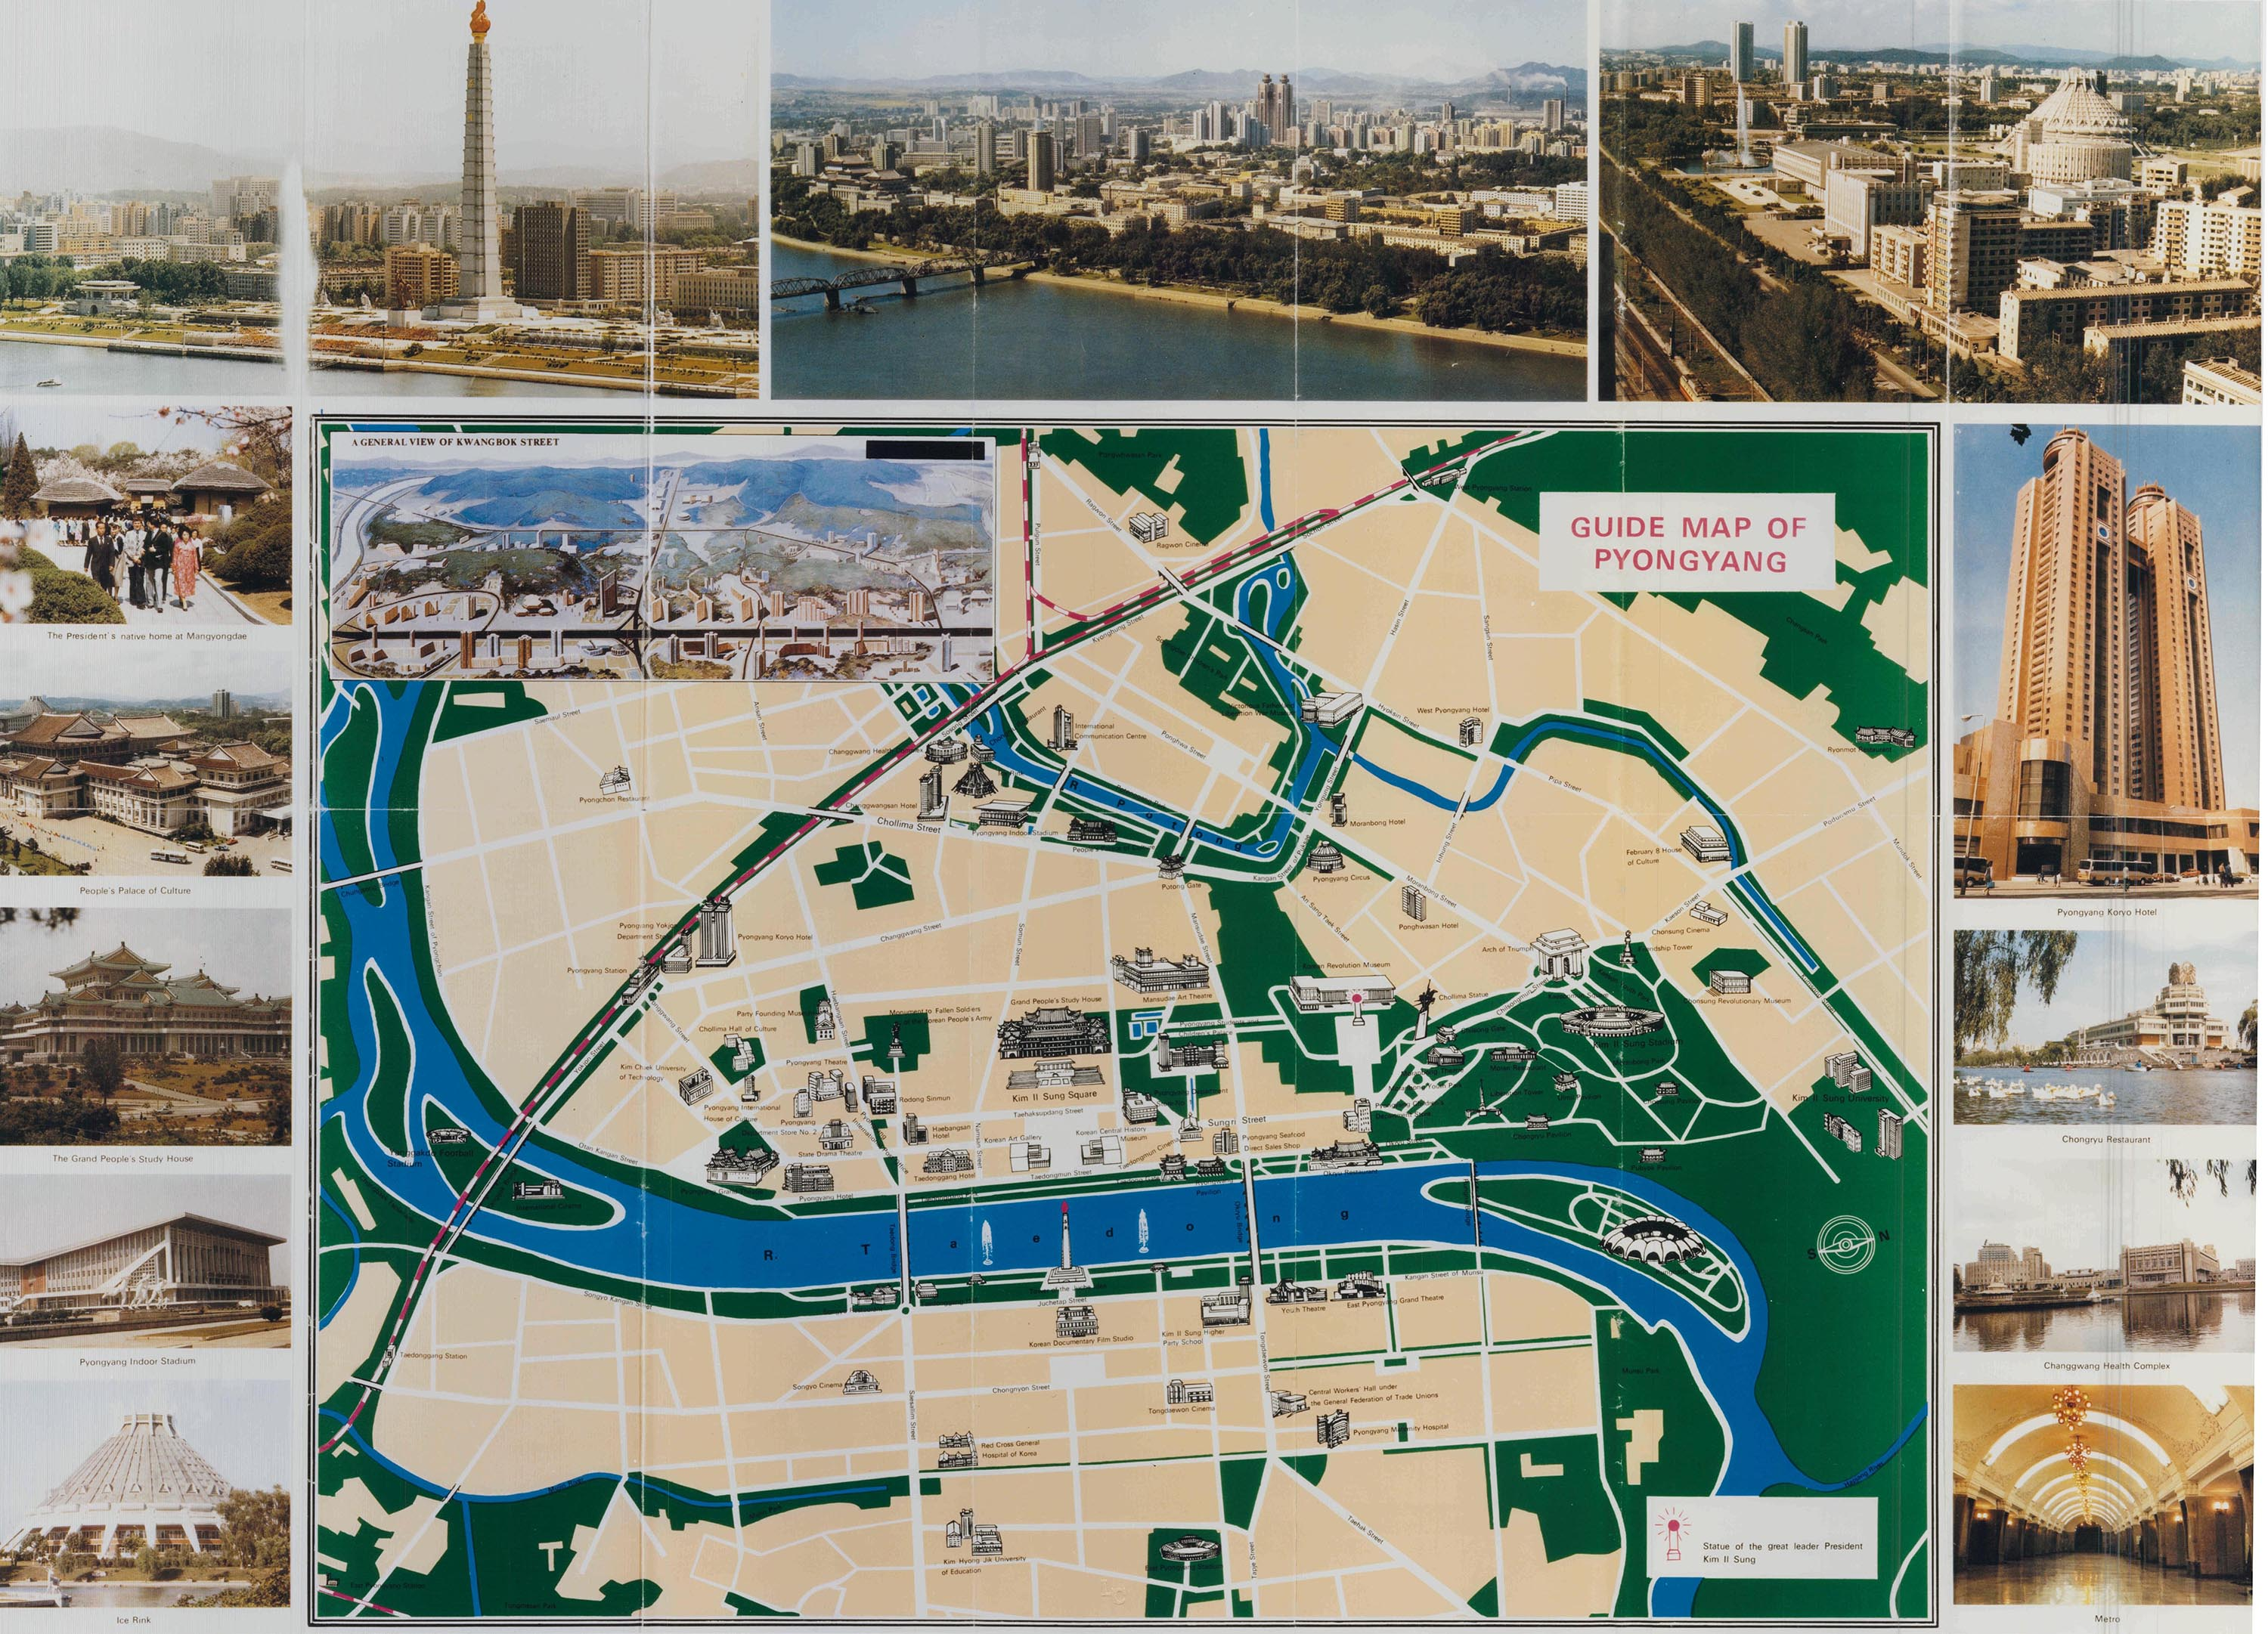 North Korea s Enigmatic Capital Pyongyang   Worlds Revealed     Map for the 13th World Festival of Youth and Students  published by the  DPRK in